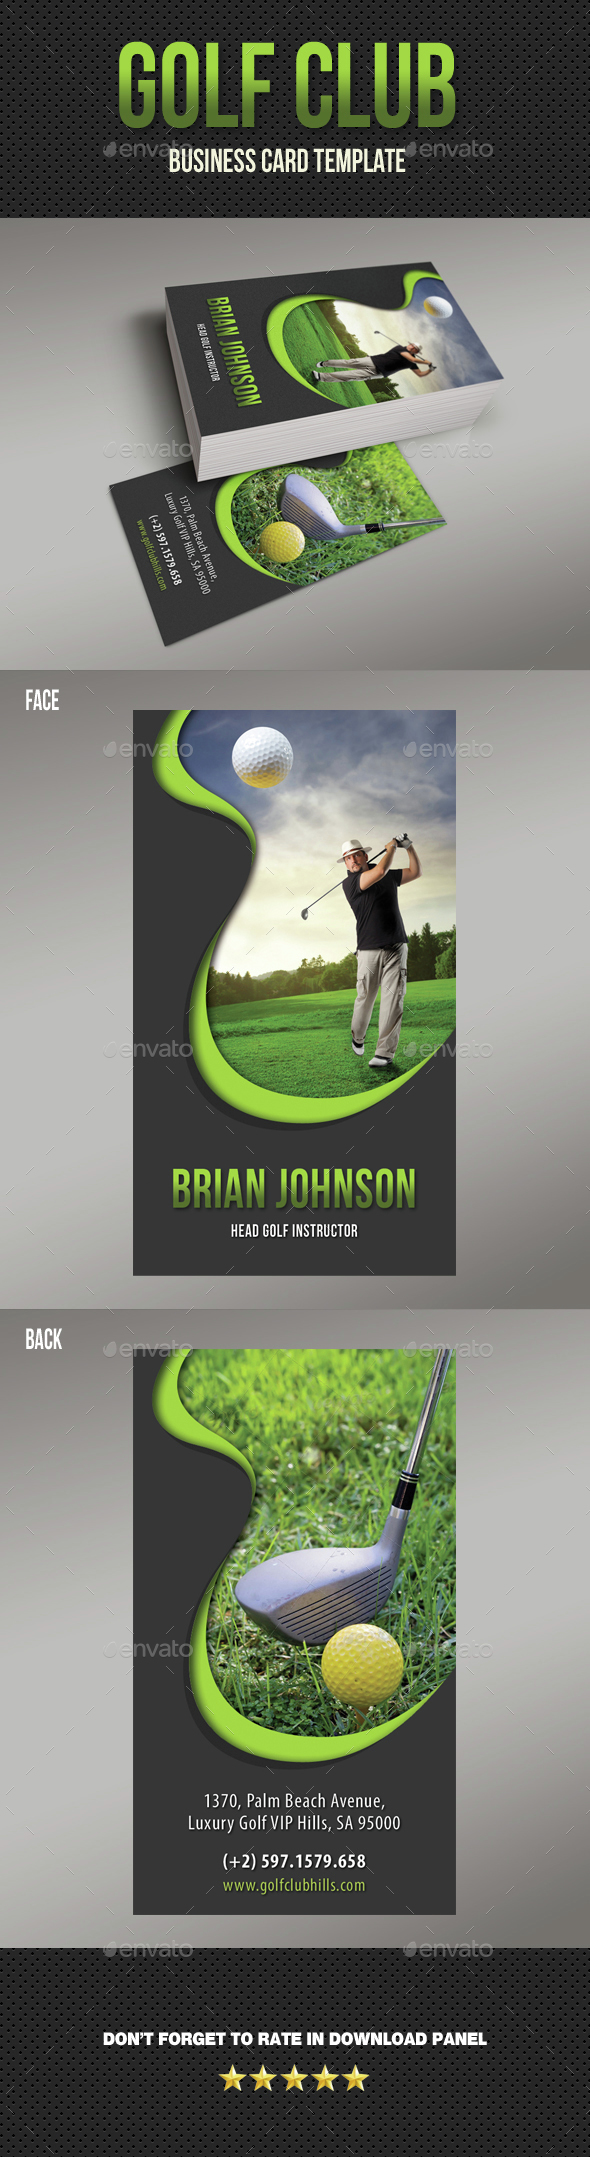 Golf Club Business Card 03 - Business Cards Print Templates